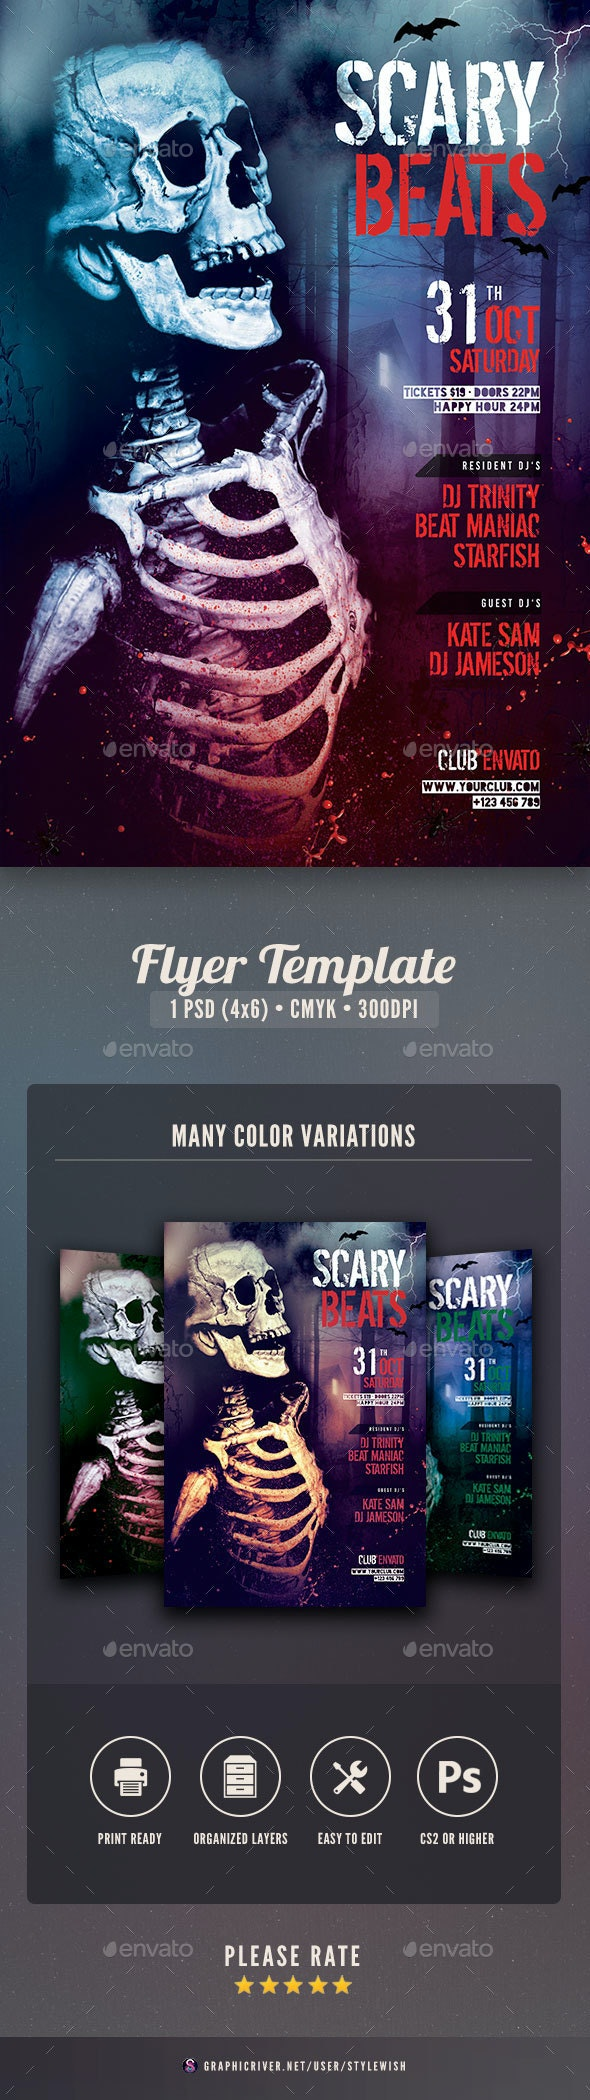 Scary Beats Flyer - Clubs & Parties Events